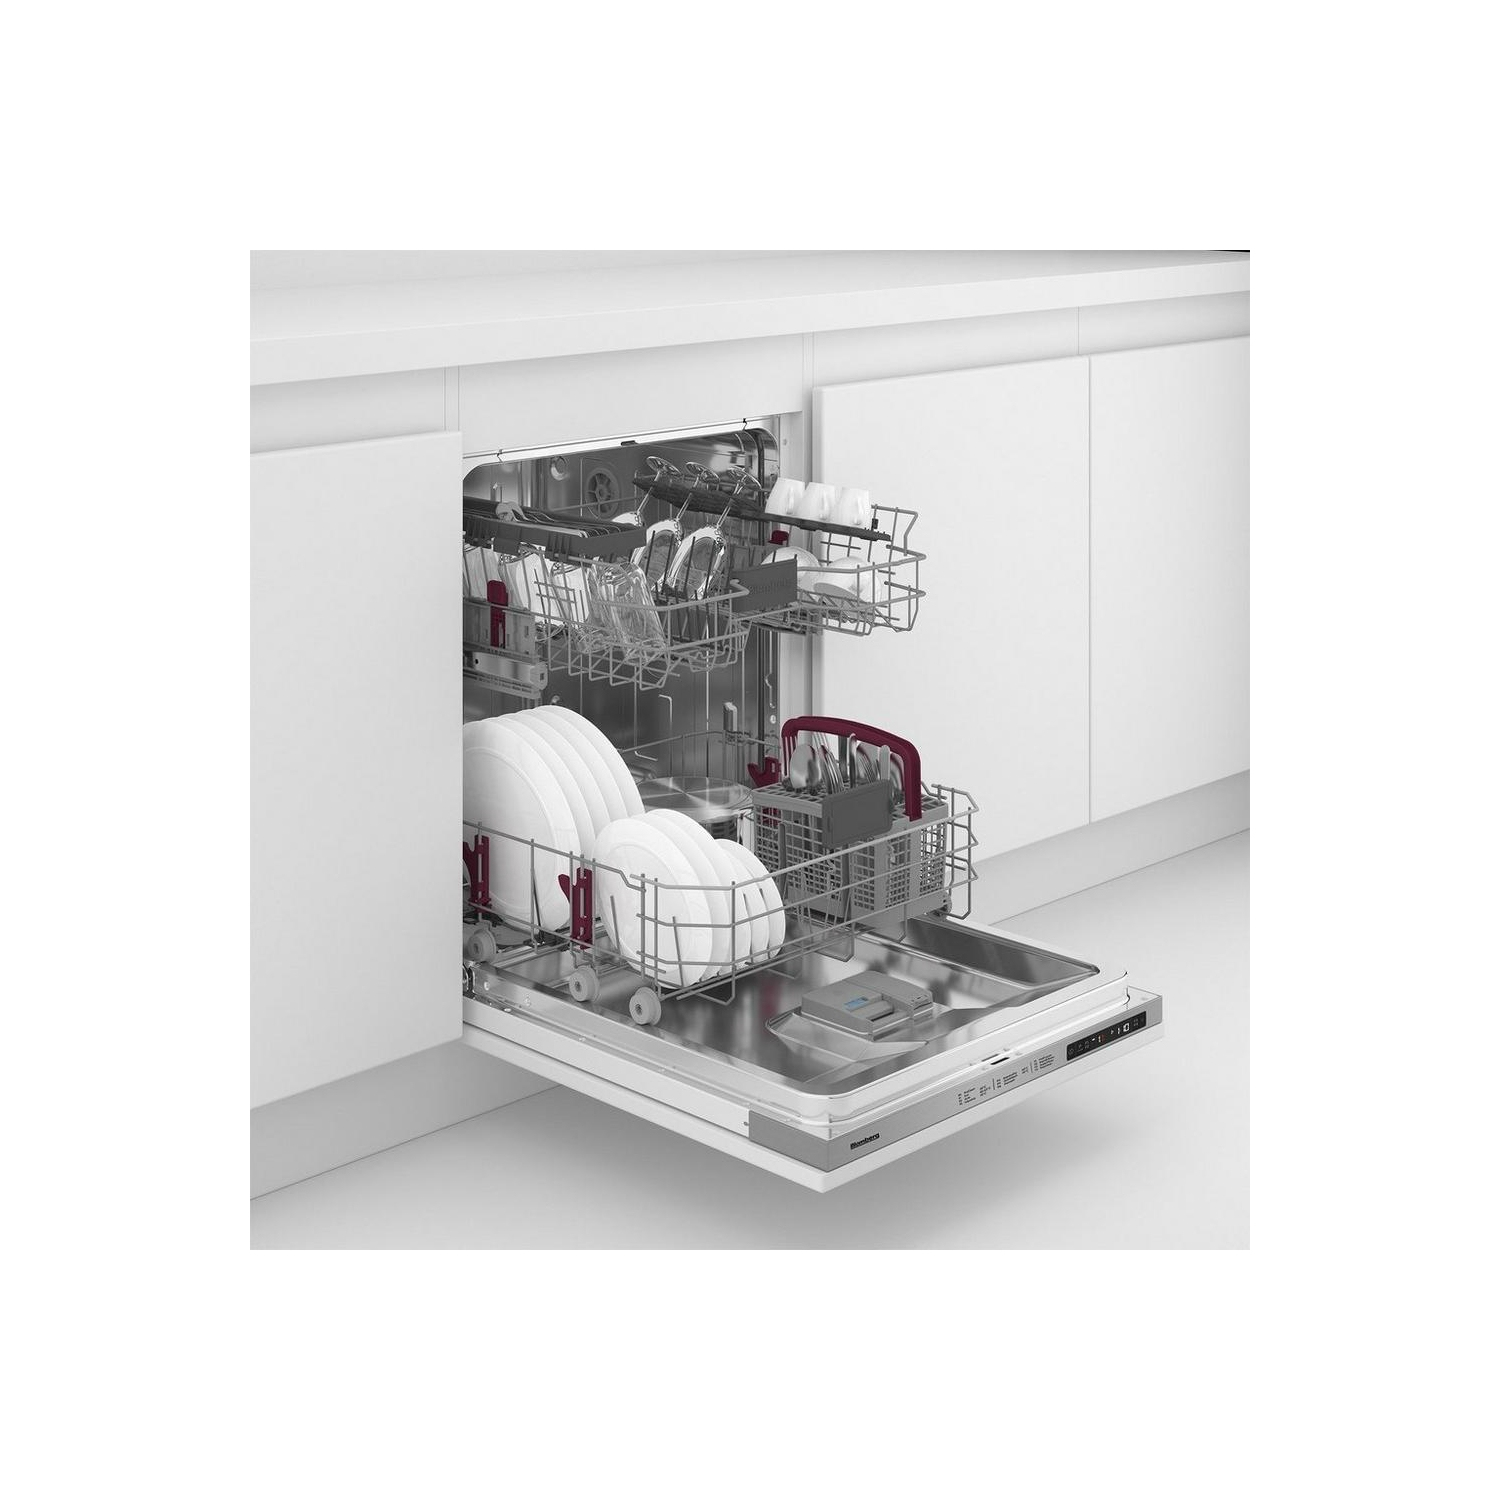 Blomberg 14 Place Settings Built In Dishwasher - A+ Rated - 4